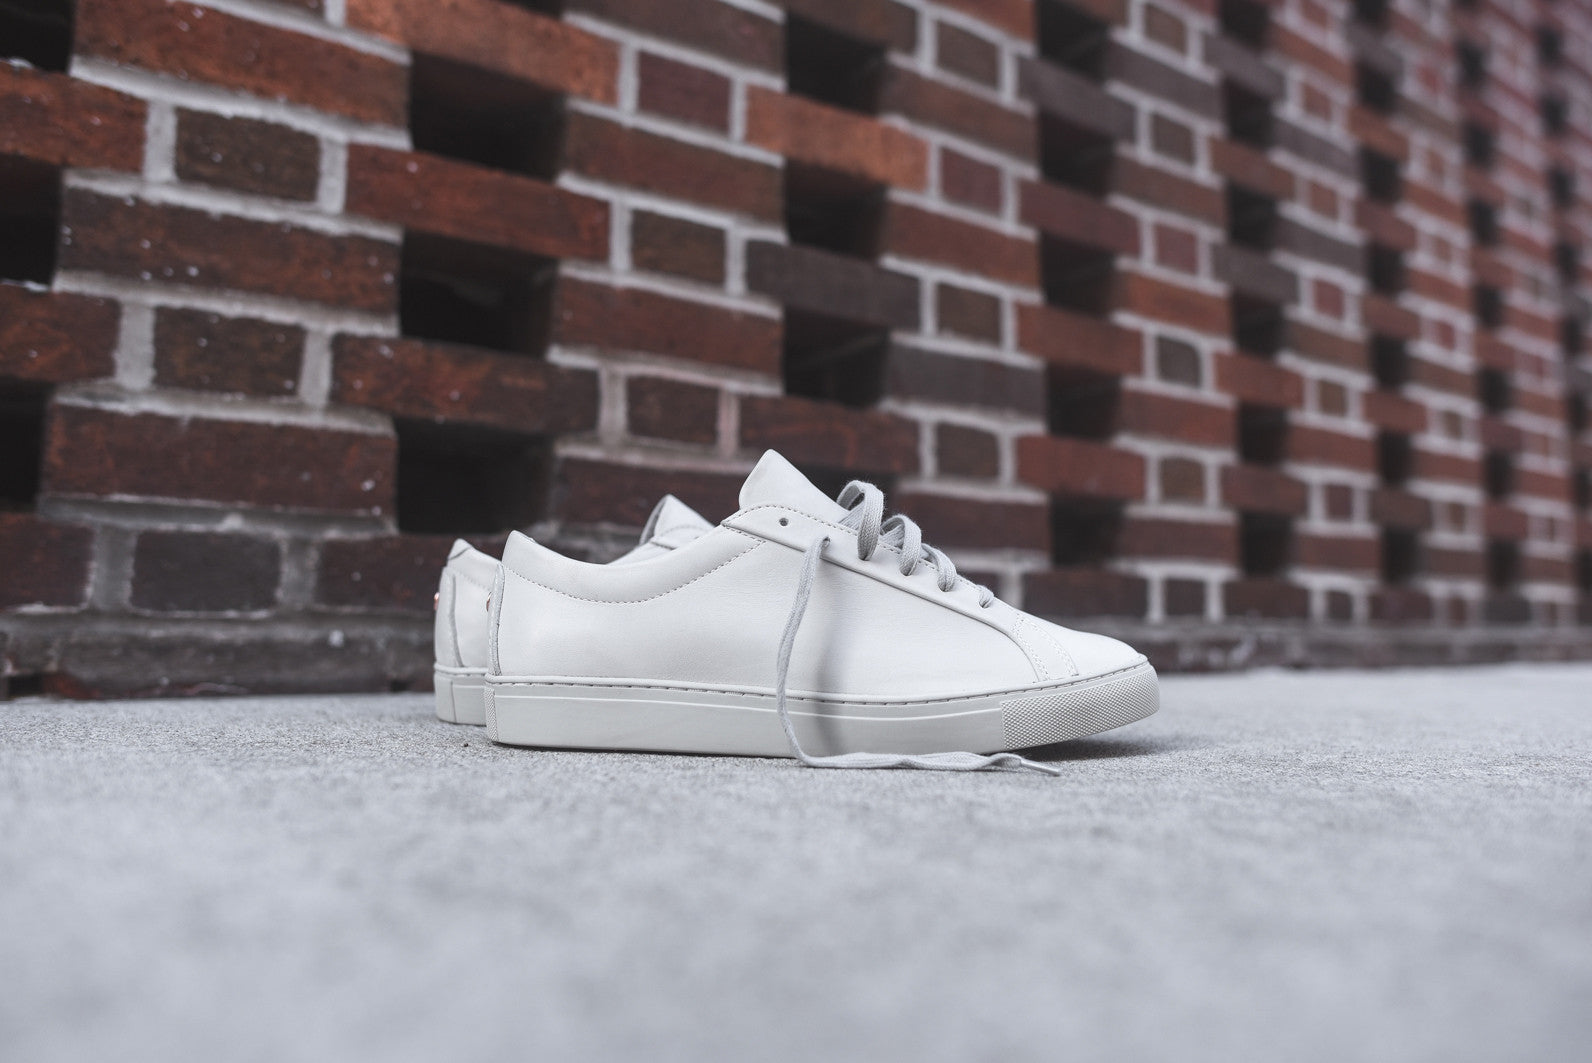 Thorocraft Kennedy - Vapor White